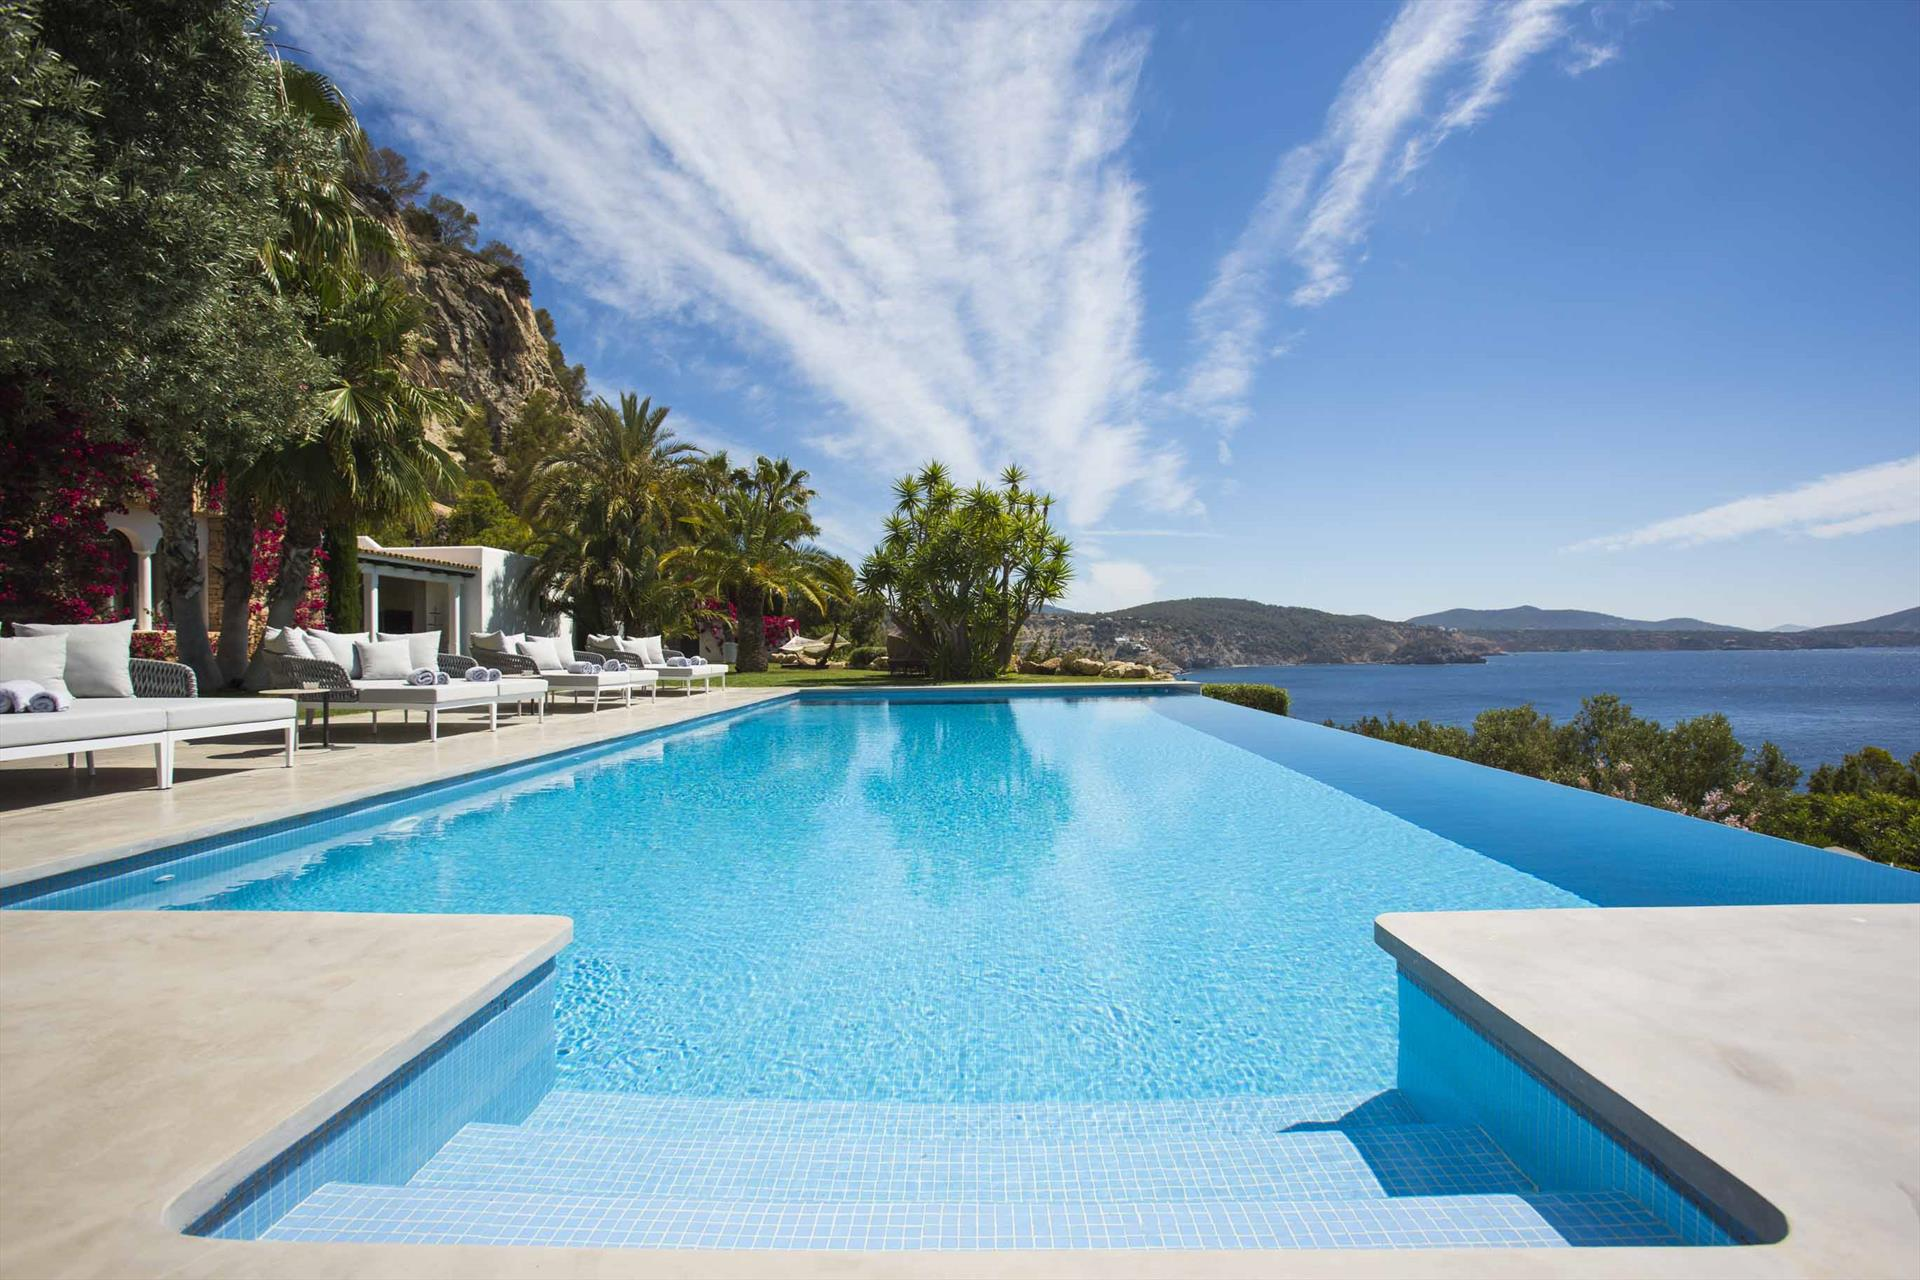 Villa Ladia, Luxury villa  with private pool in Es Cubells, Ibiza, Spain for 12 persons...